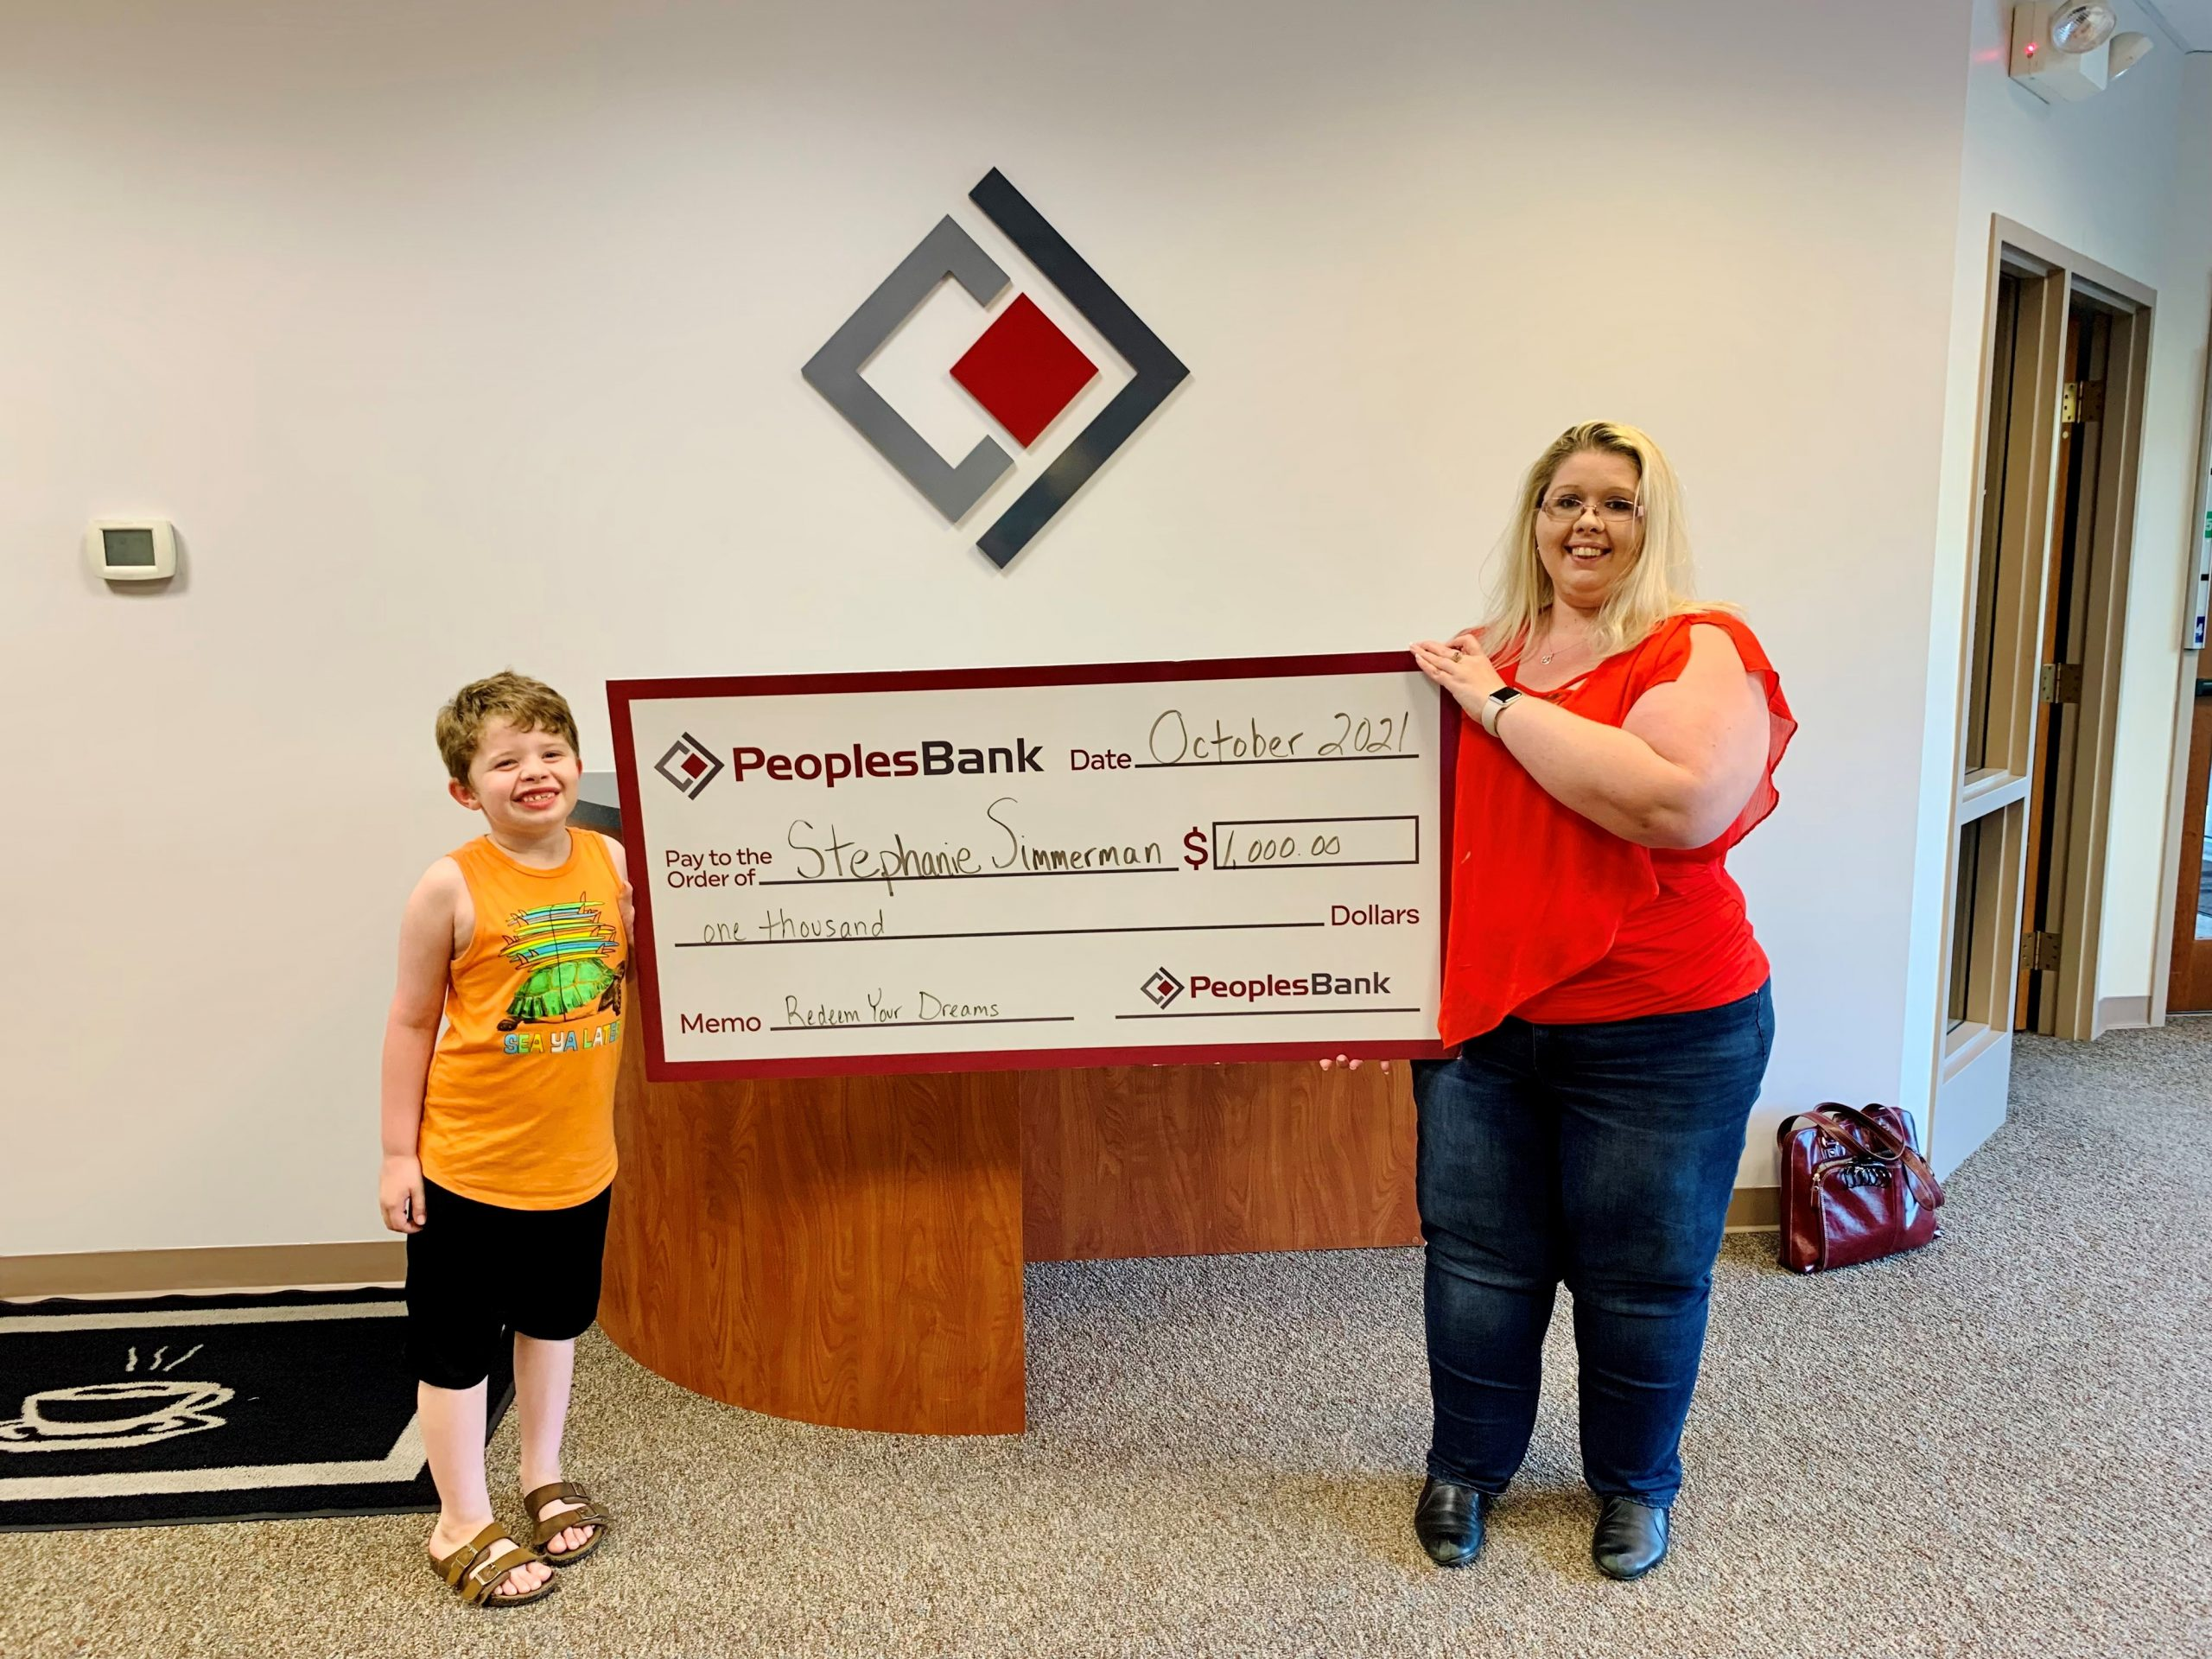 Stephanie Simmerman and son holding large check